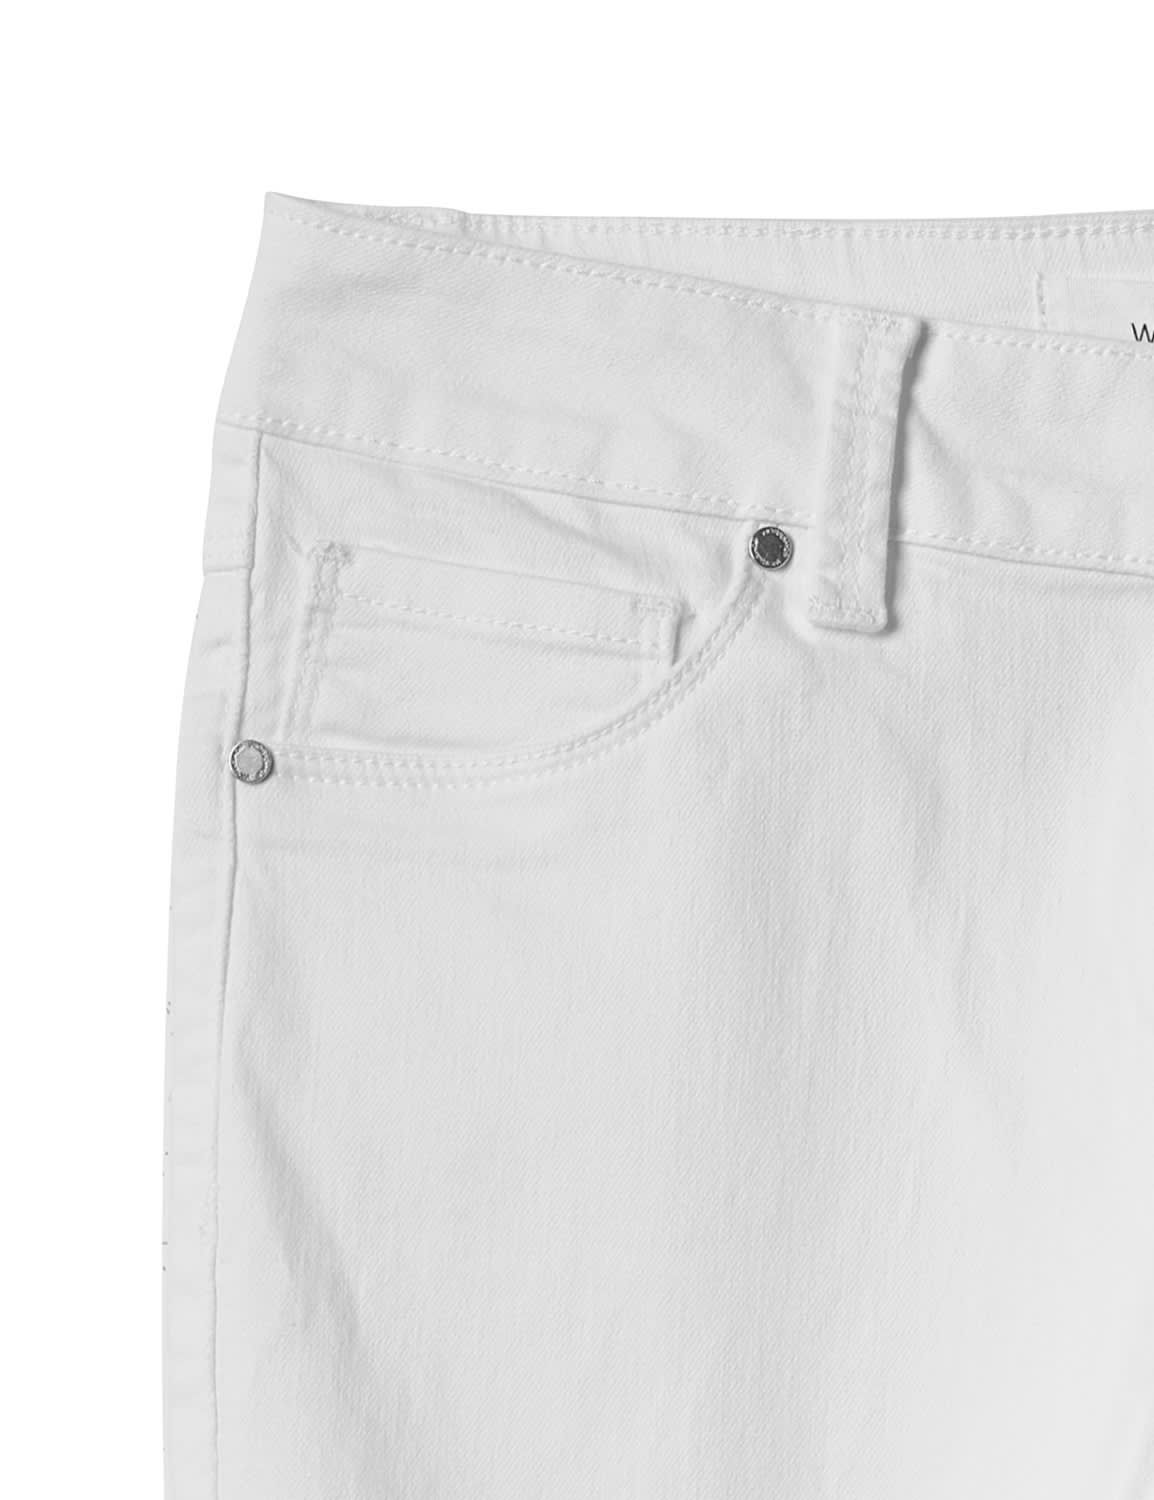 5 Pocket Skinny Ankle Jean - White - Front